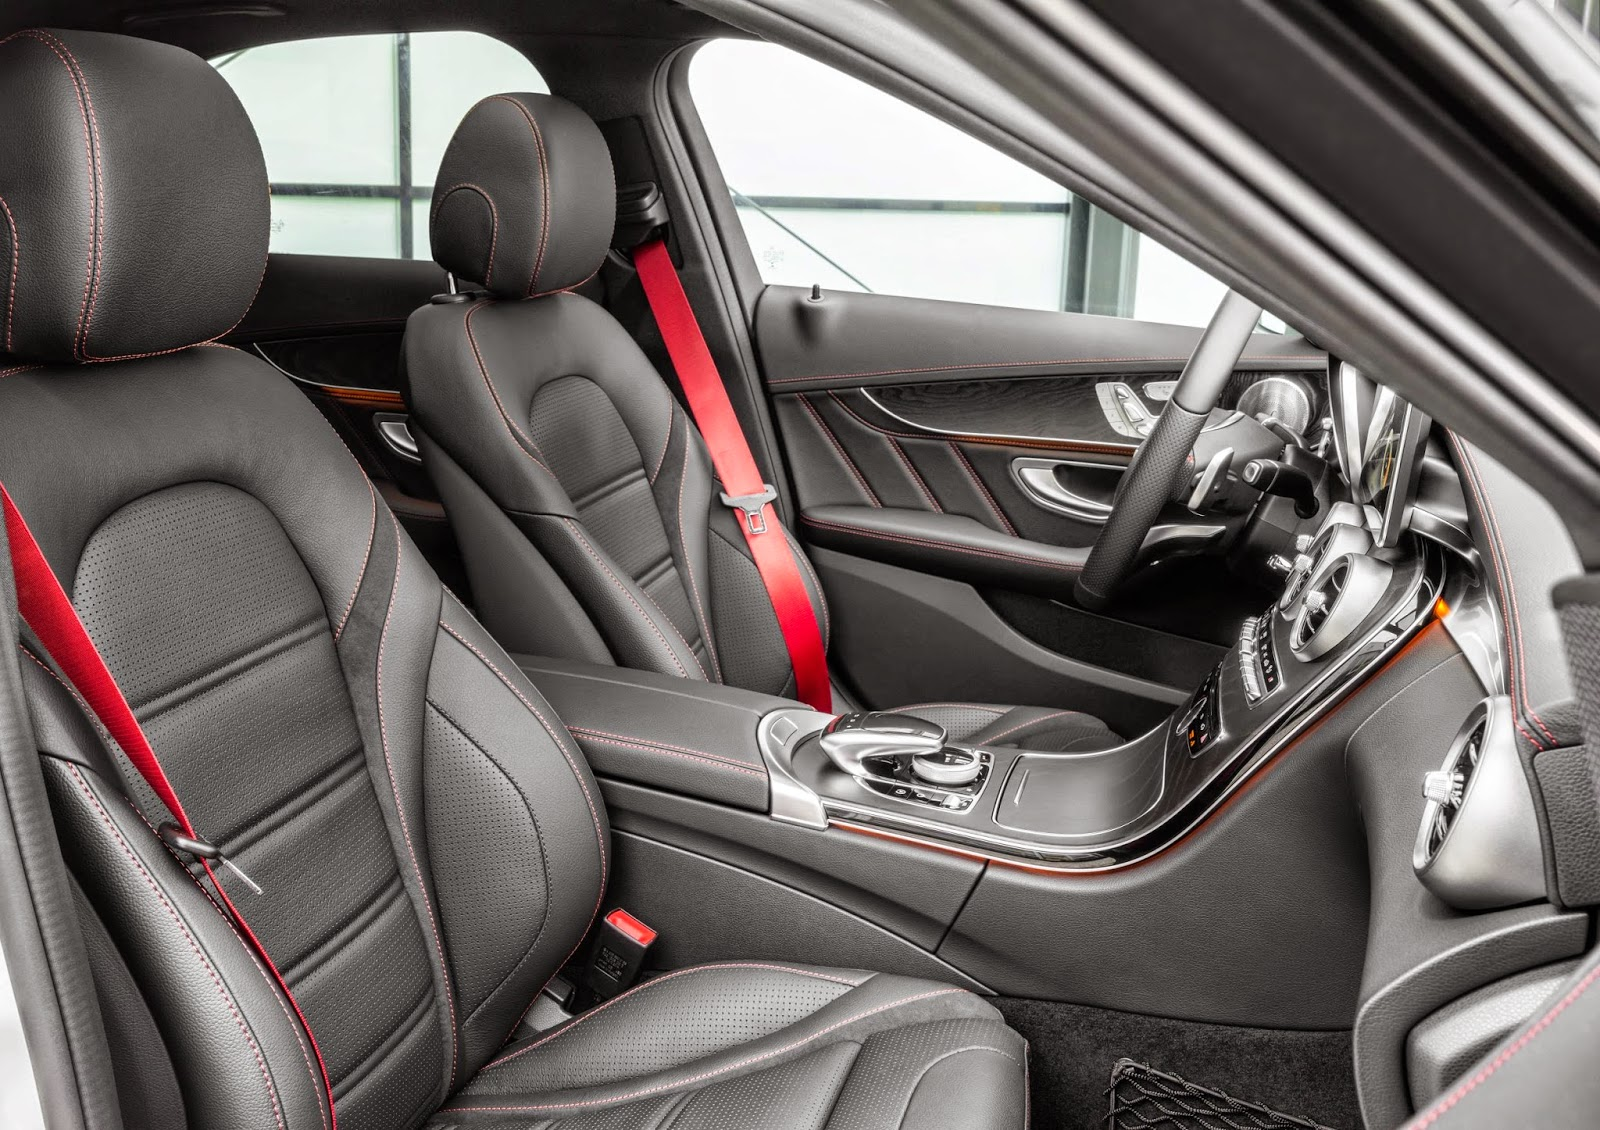 Mercedes Benz C450 AMG interior